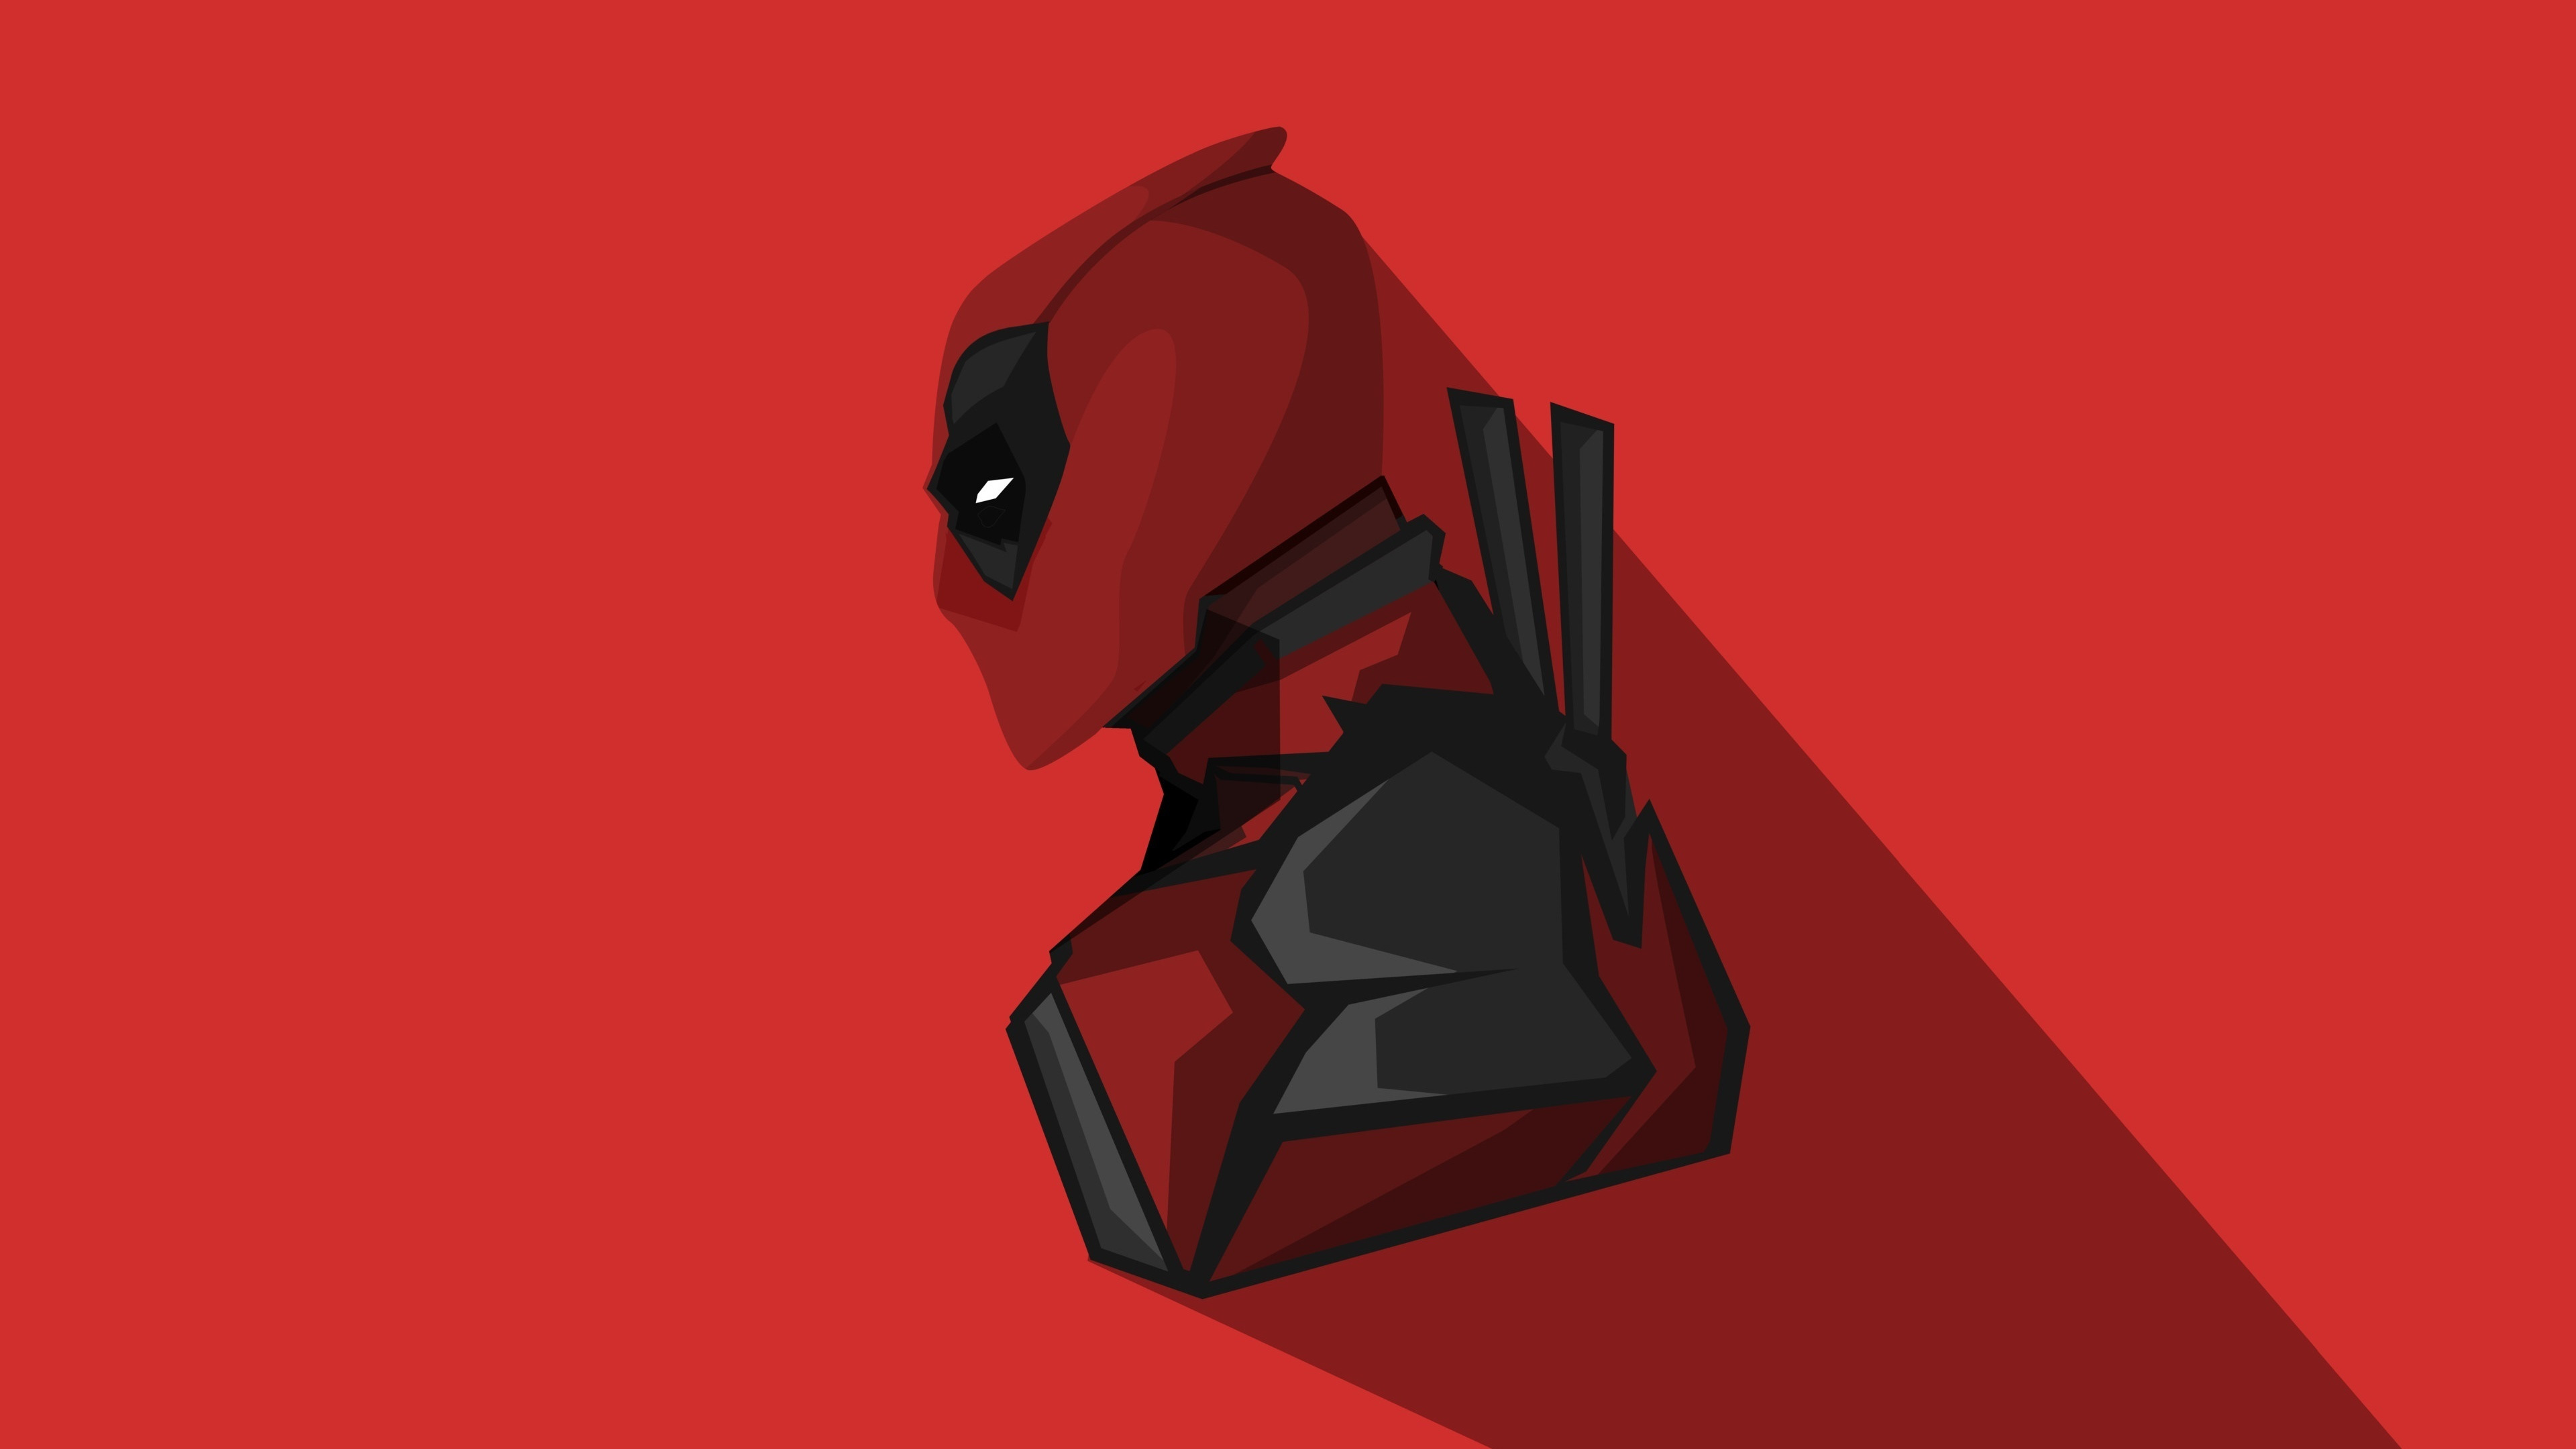 Download 3840x2160 Wallpaper Deadpool Marvel Comics Minimal 4k